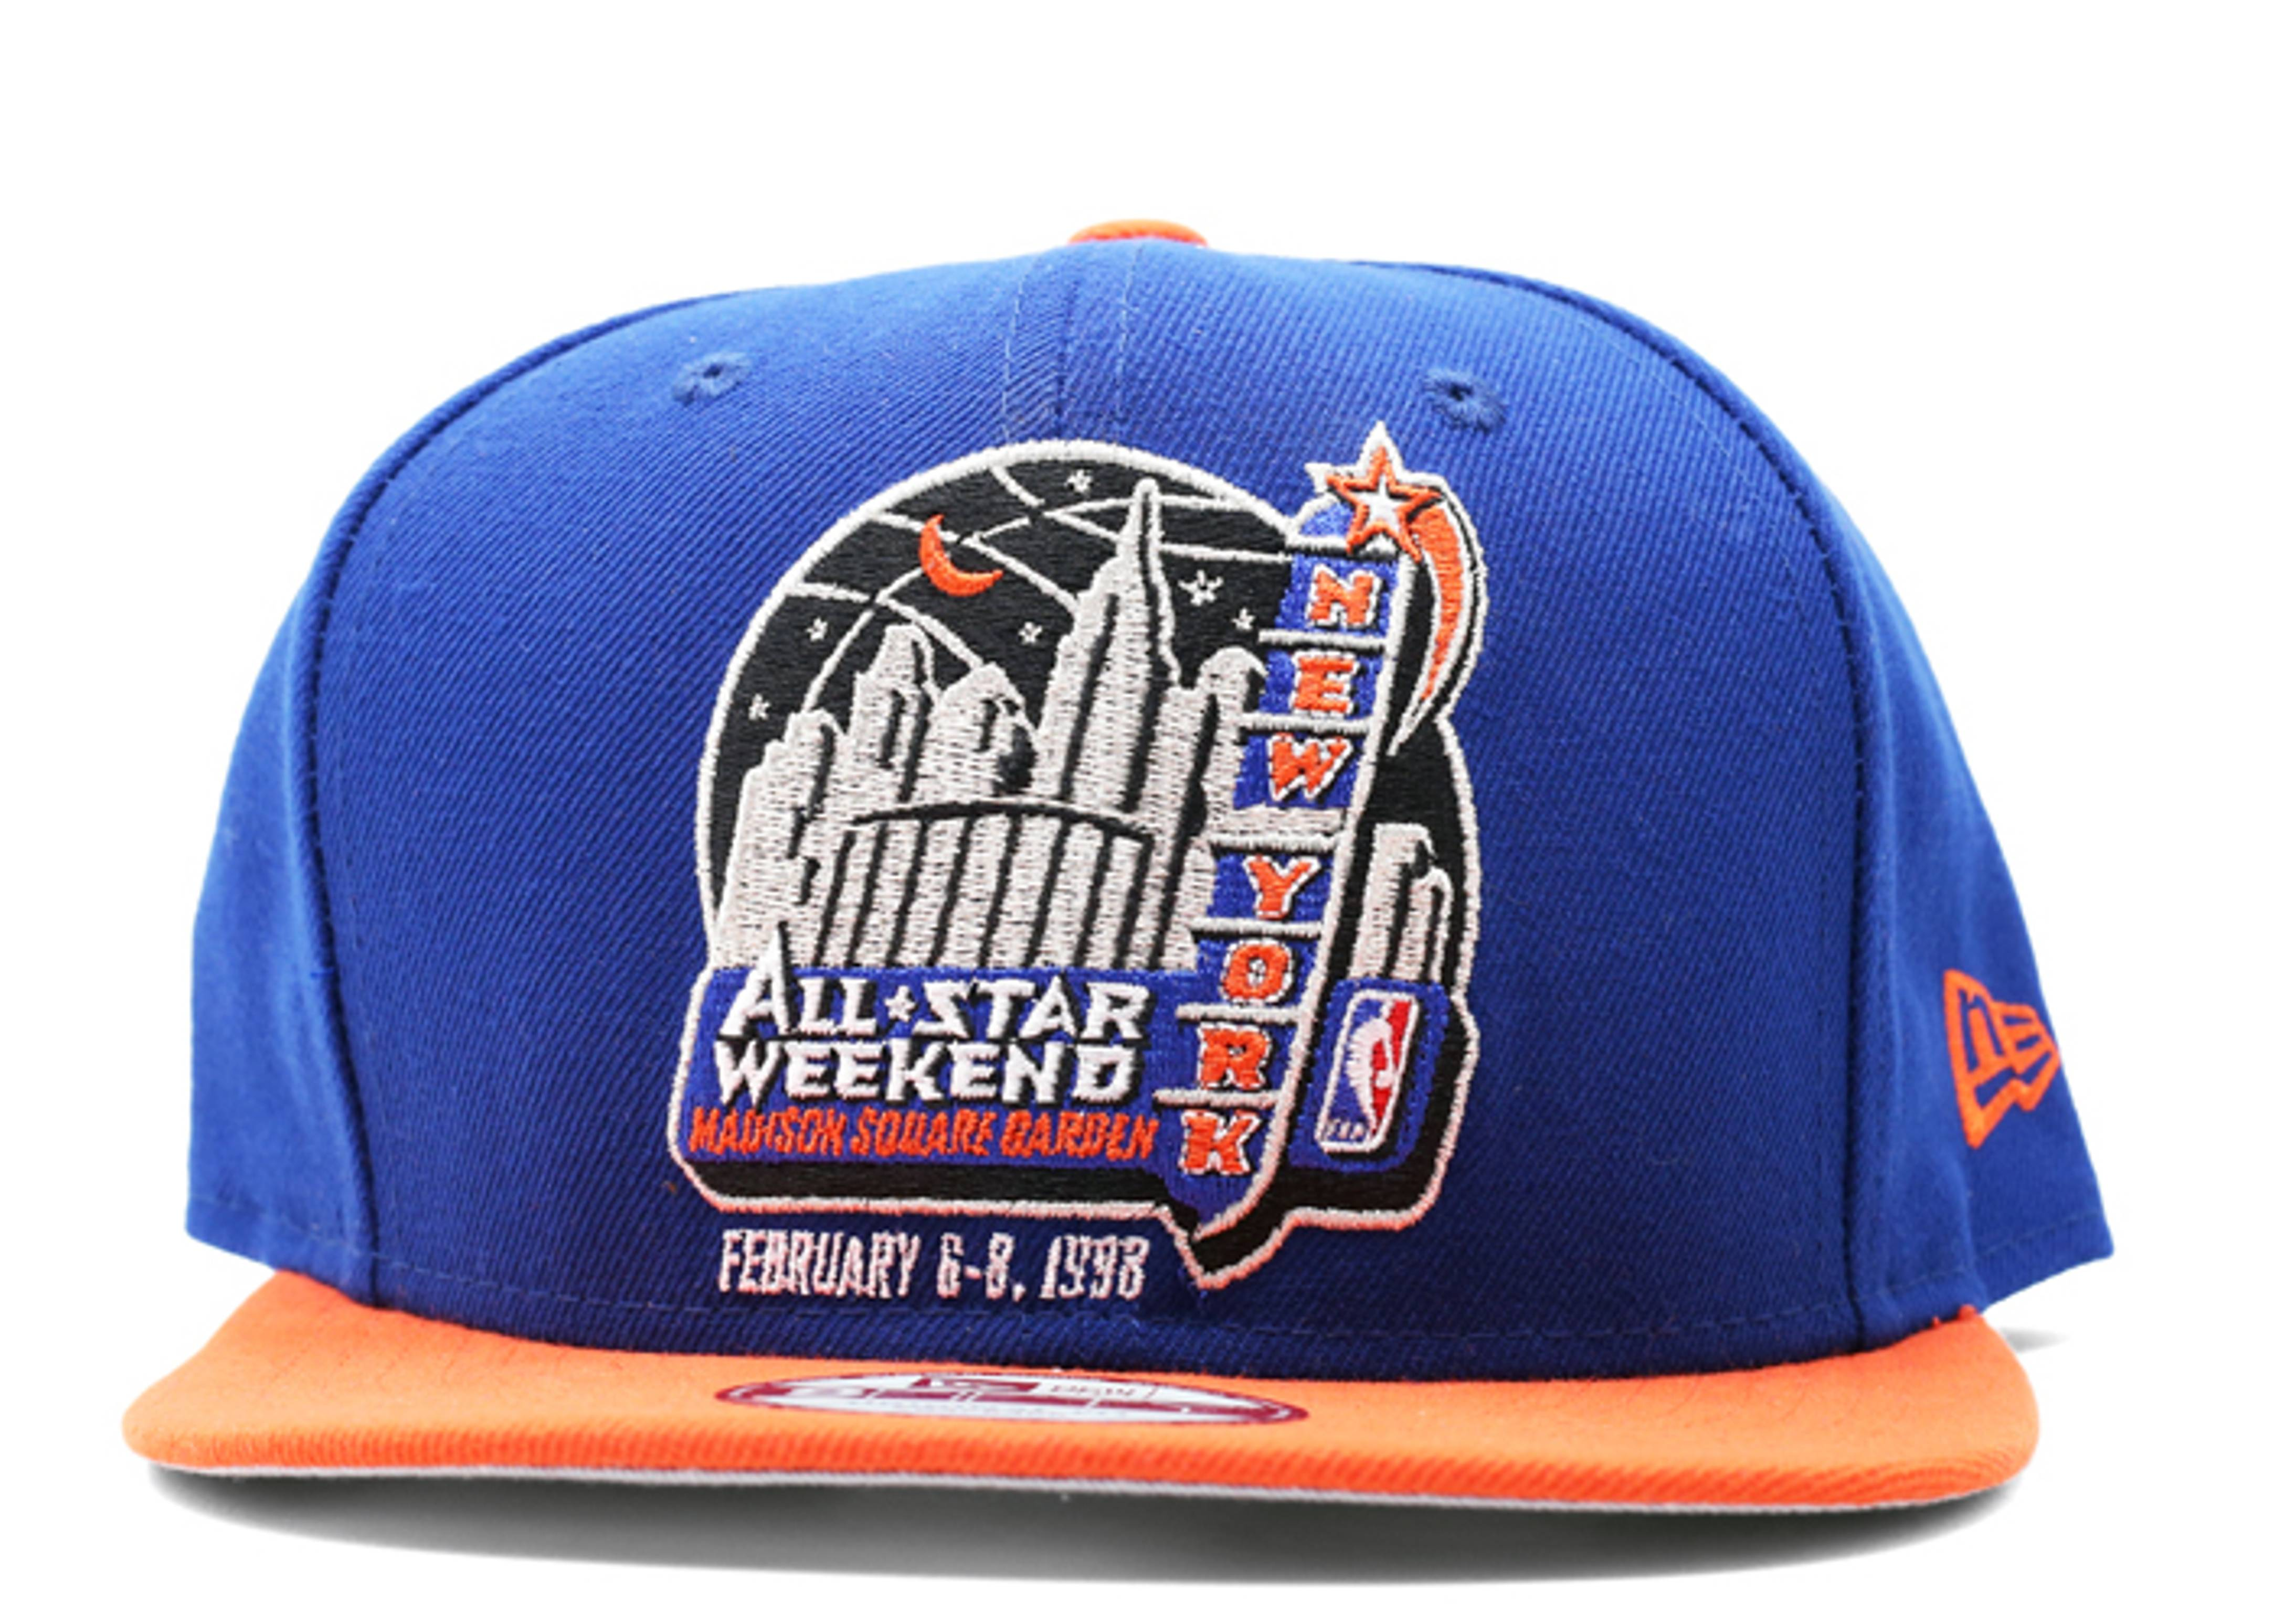 1998 all star weekend snap-back